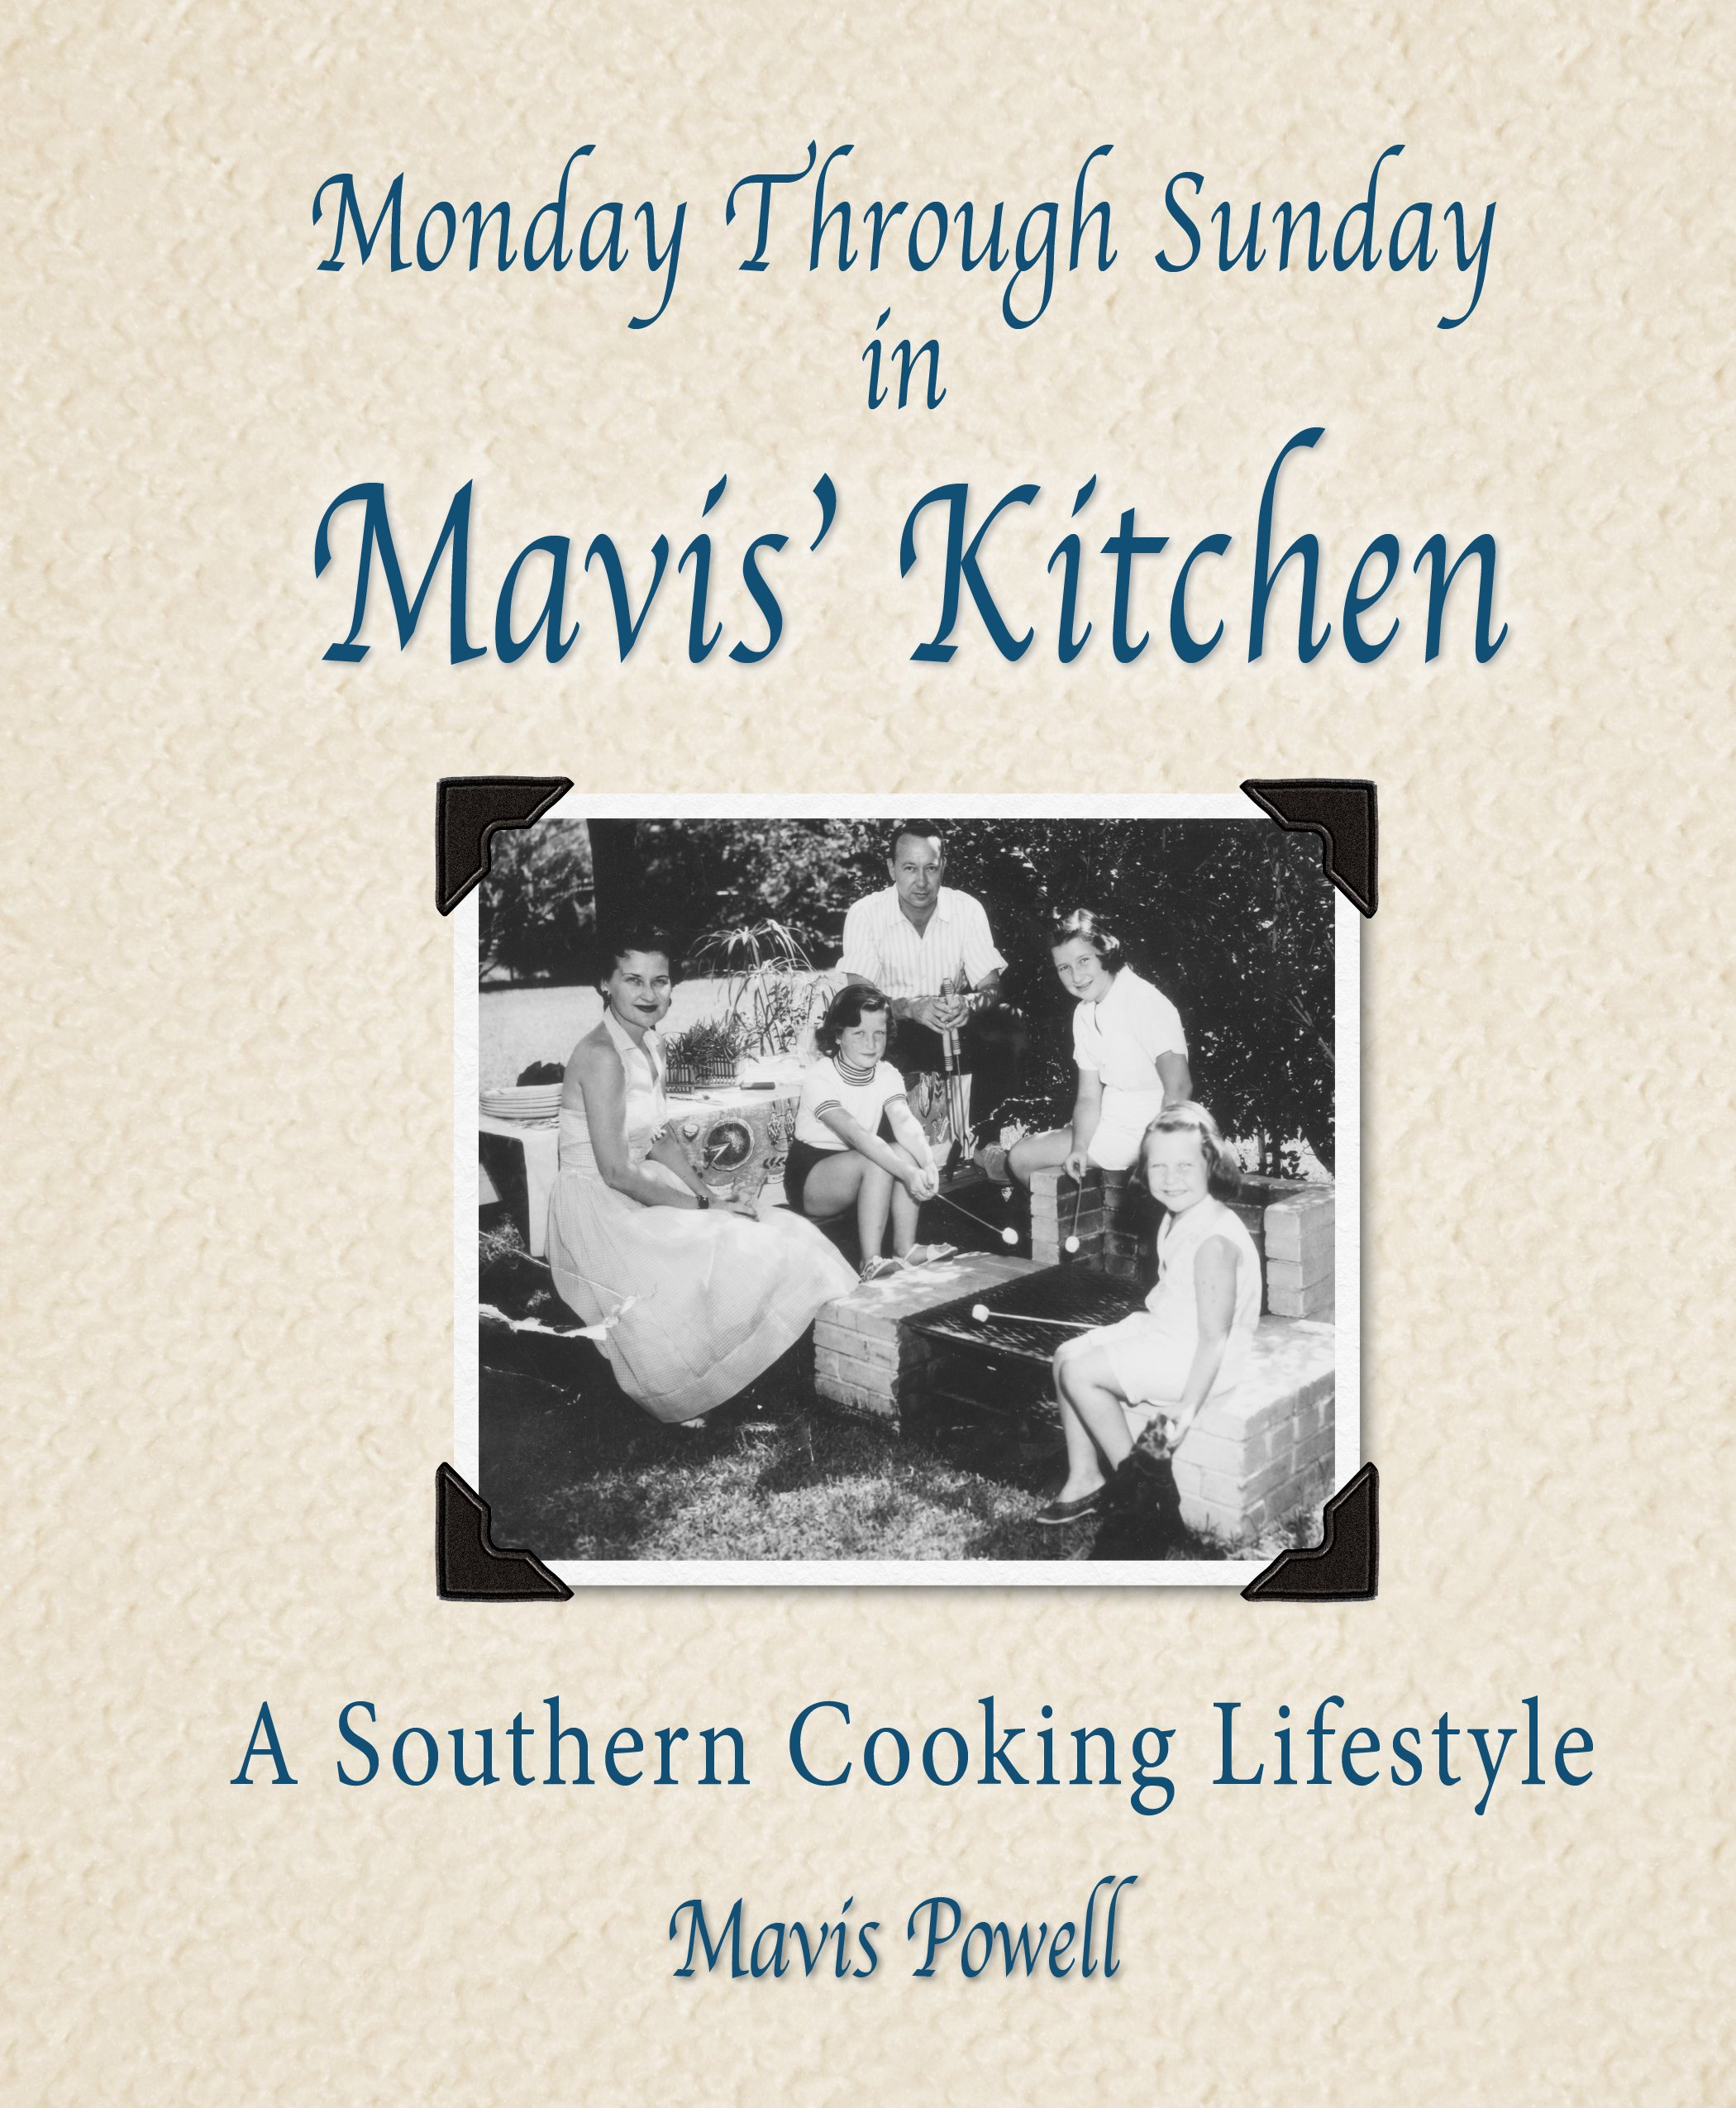 MONDAY THROUGH SUNDAY IN MAVIS KITCHEN A Southern Cooking